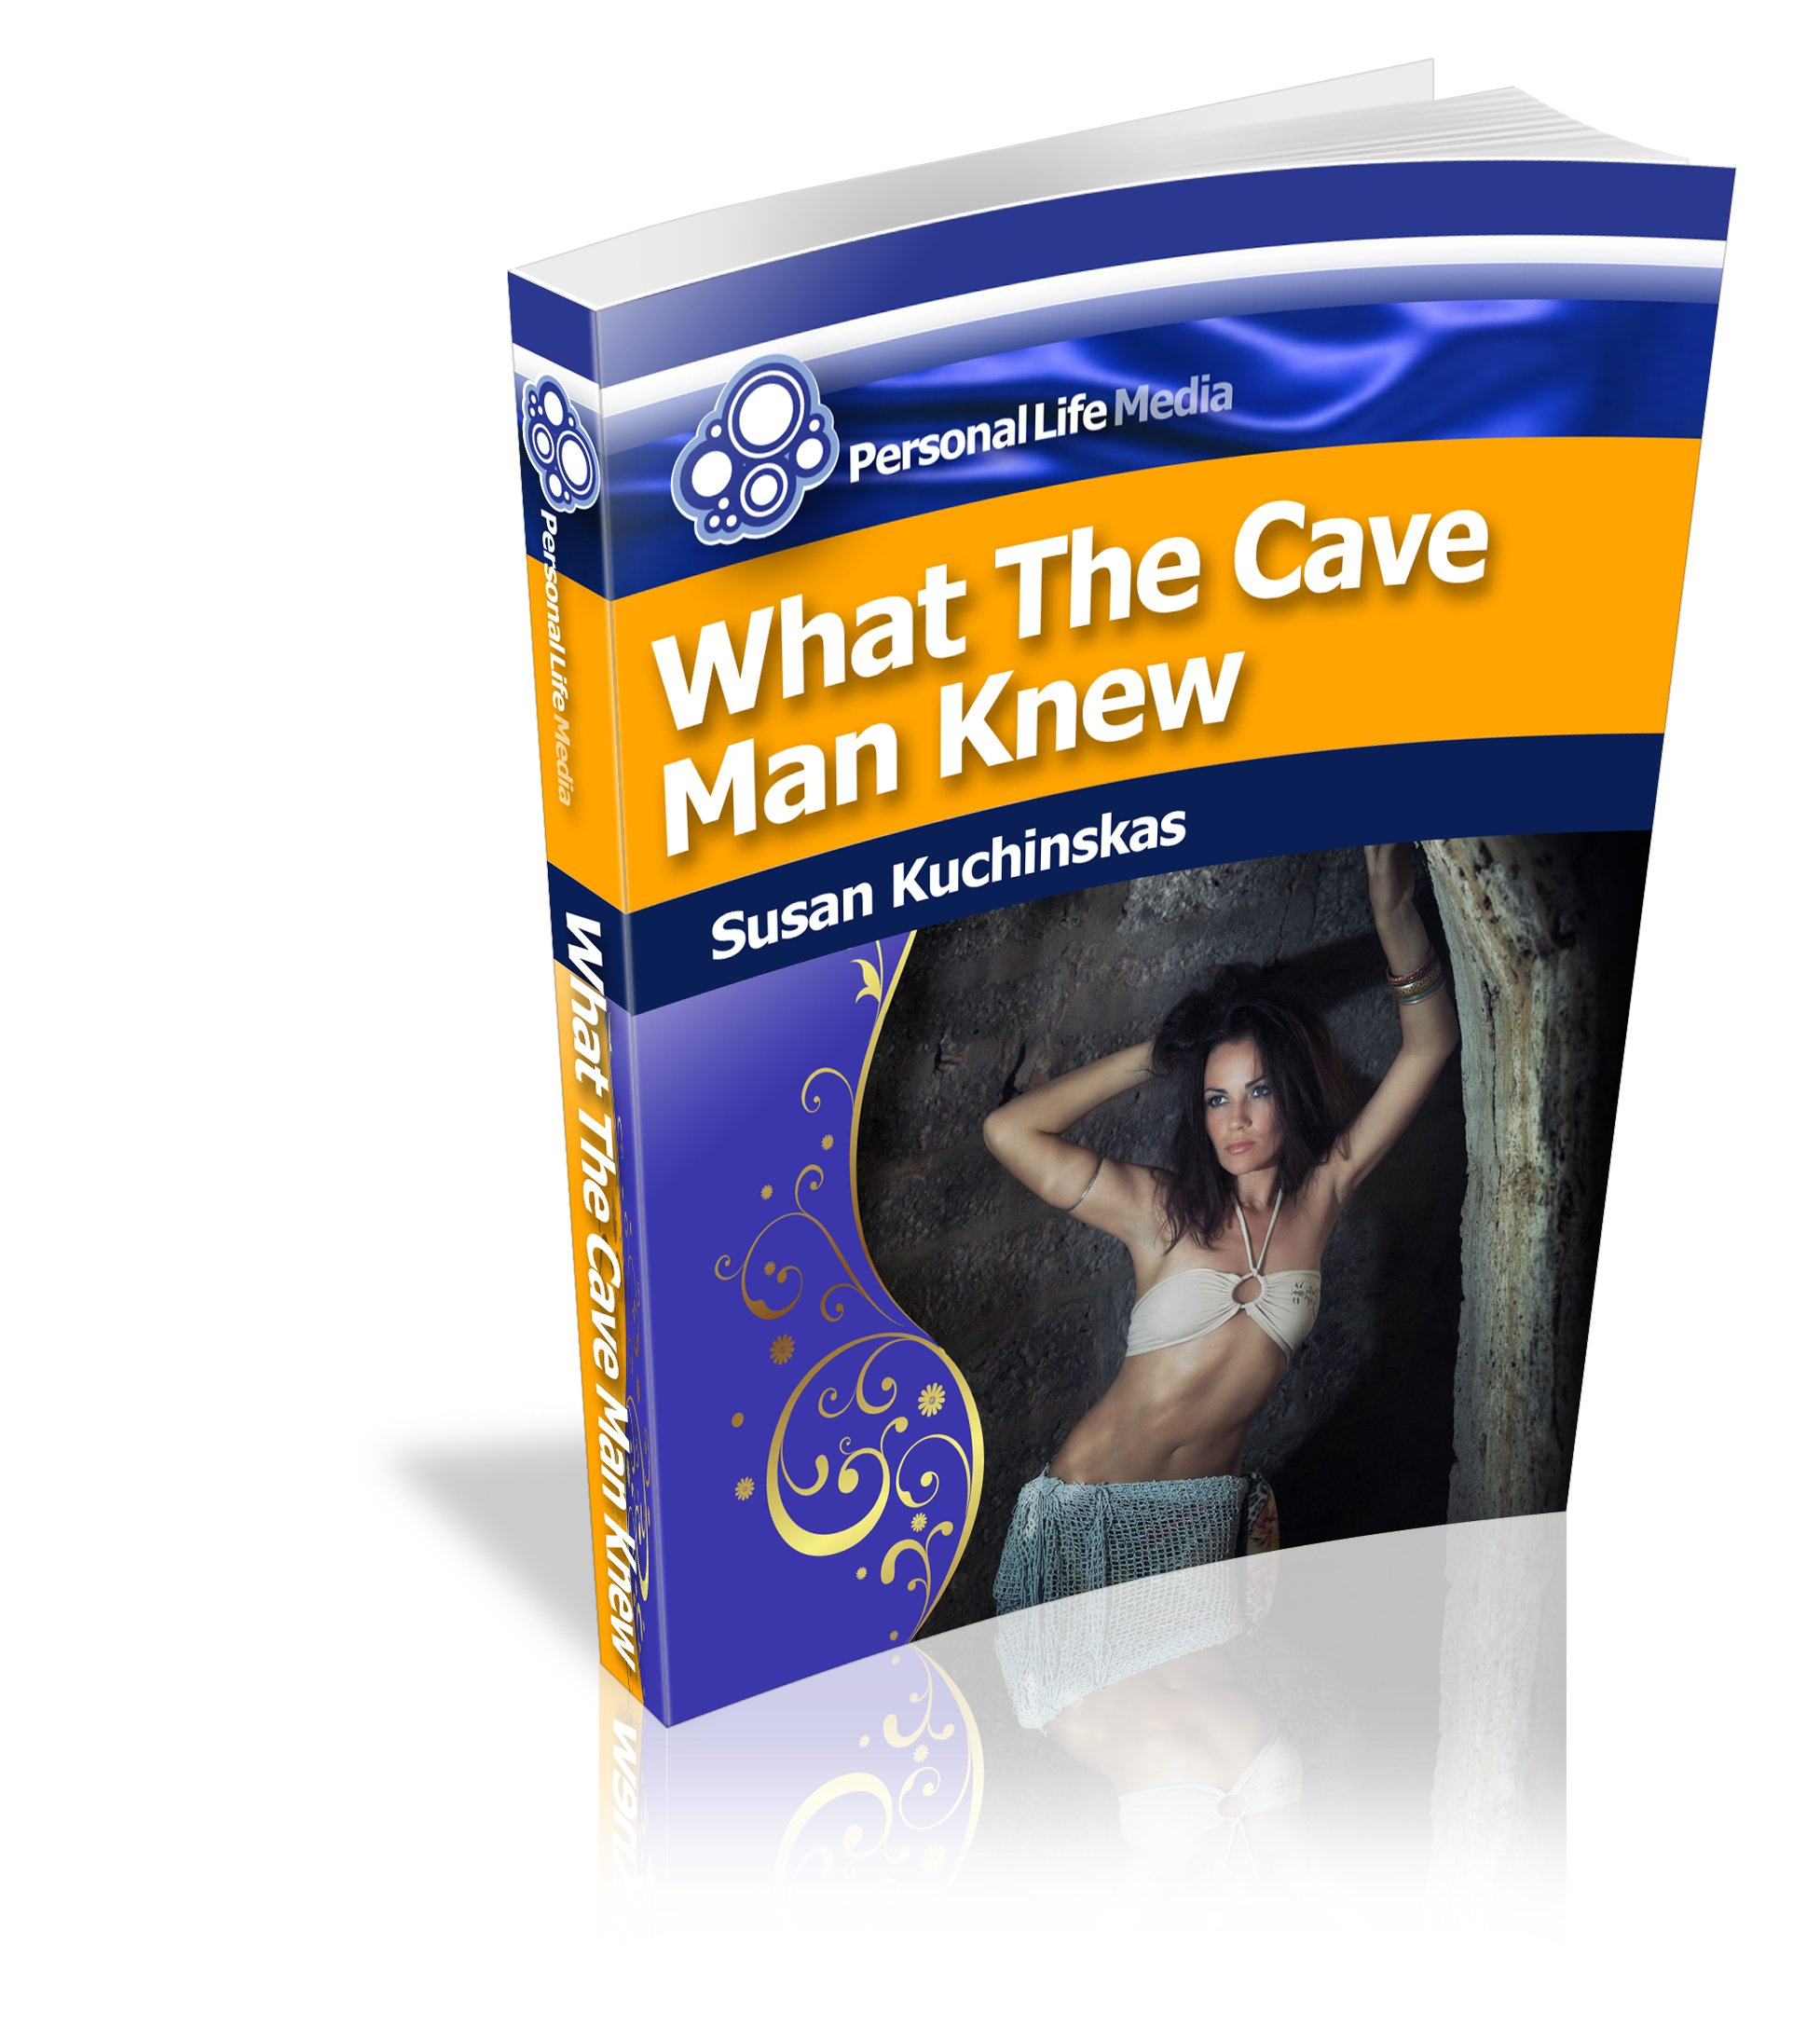 https://members.personallifemedia.com/wp-content/uploads/2011/07/Caveman_BOOK.jpg